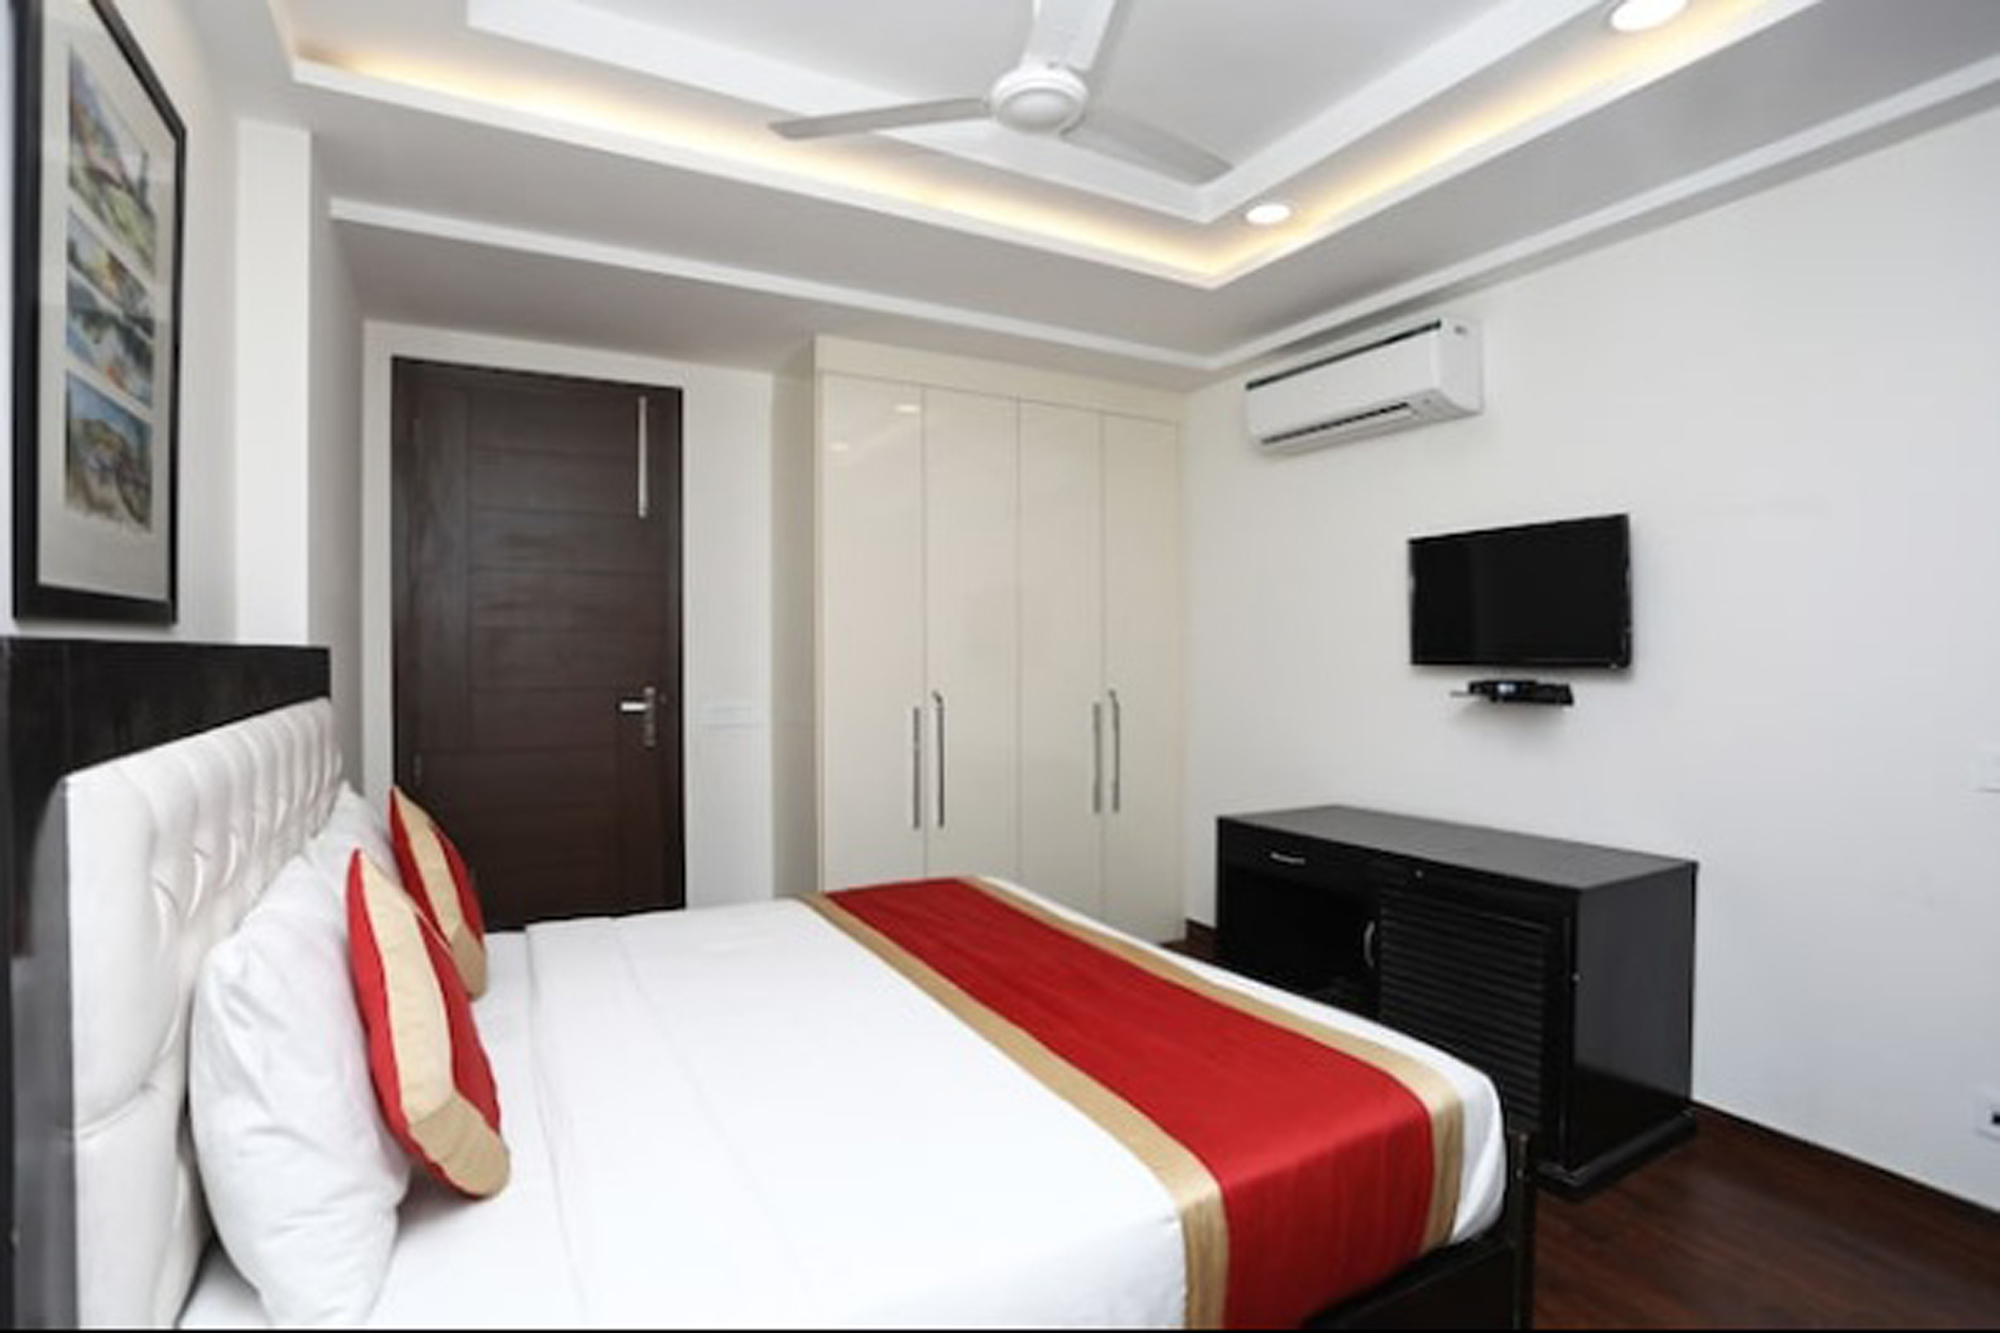 https://www.hotelsbyday.com/_data/default-hotel_image/2/14699/5-amar-villa-deluxe-ac-room-side-view.jpg